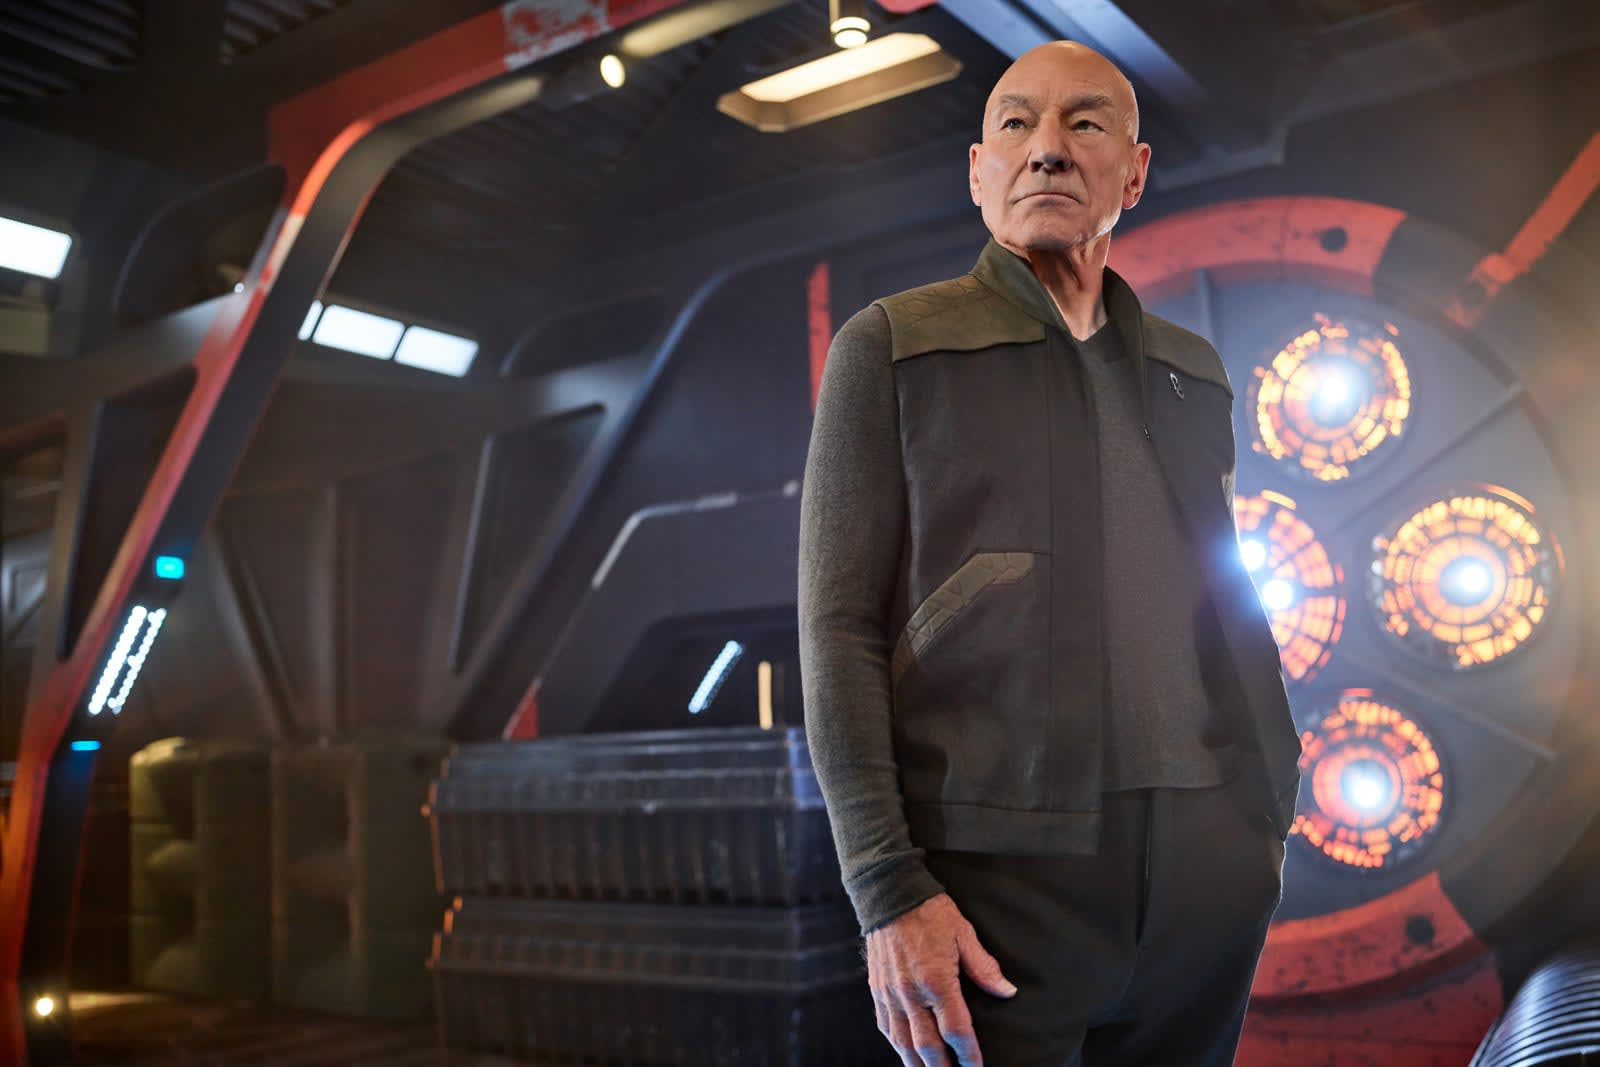 'Star Trek: Picard' has already been renewed for a second season